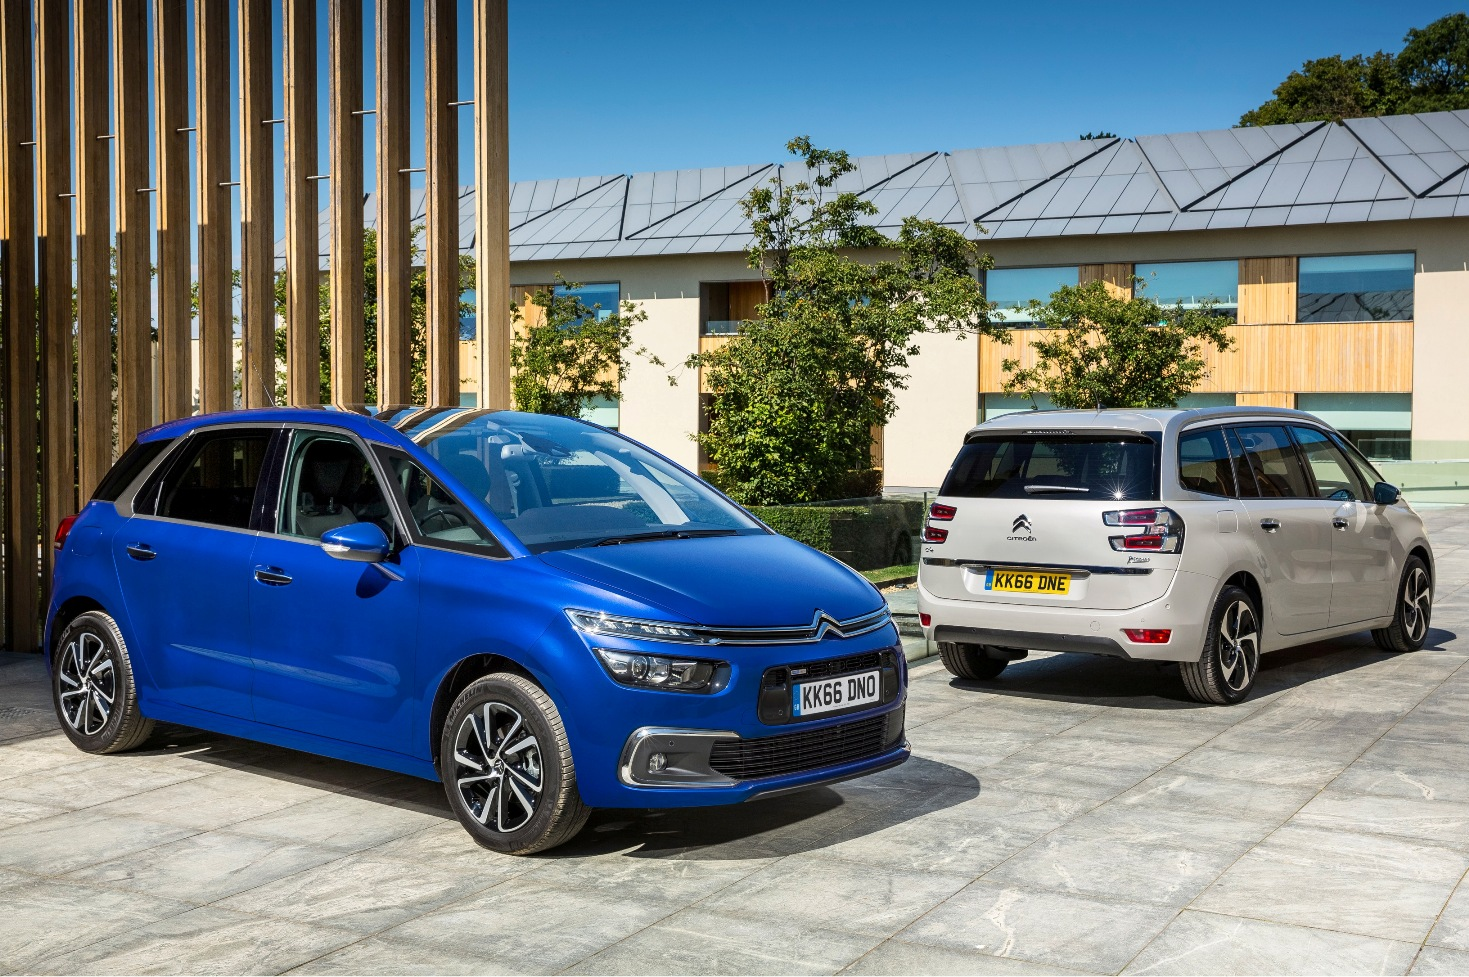 citroens-new-c4-picasso-and-grand-c4-picasso-models